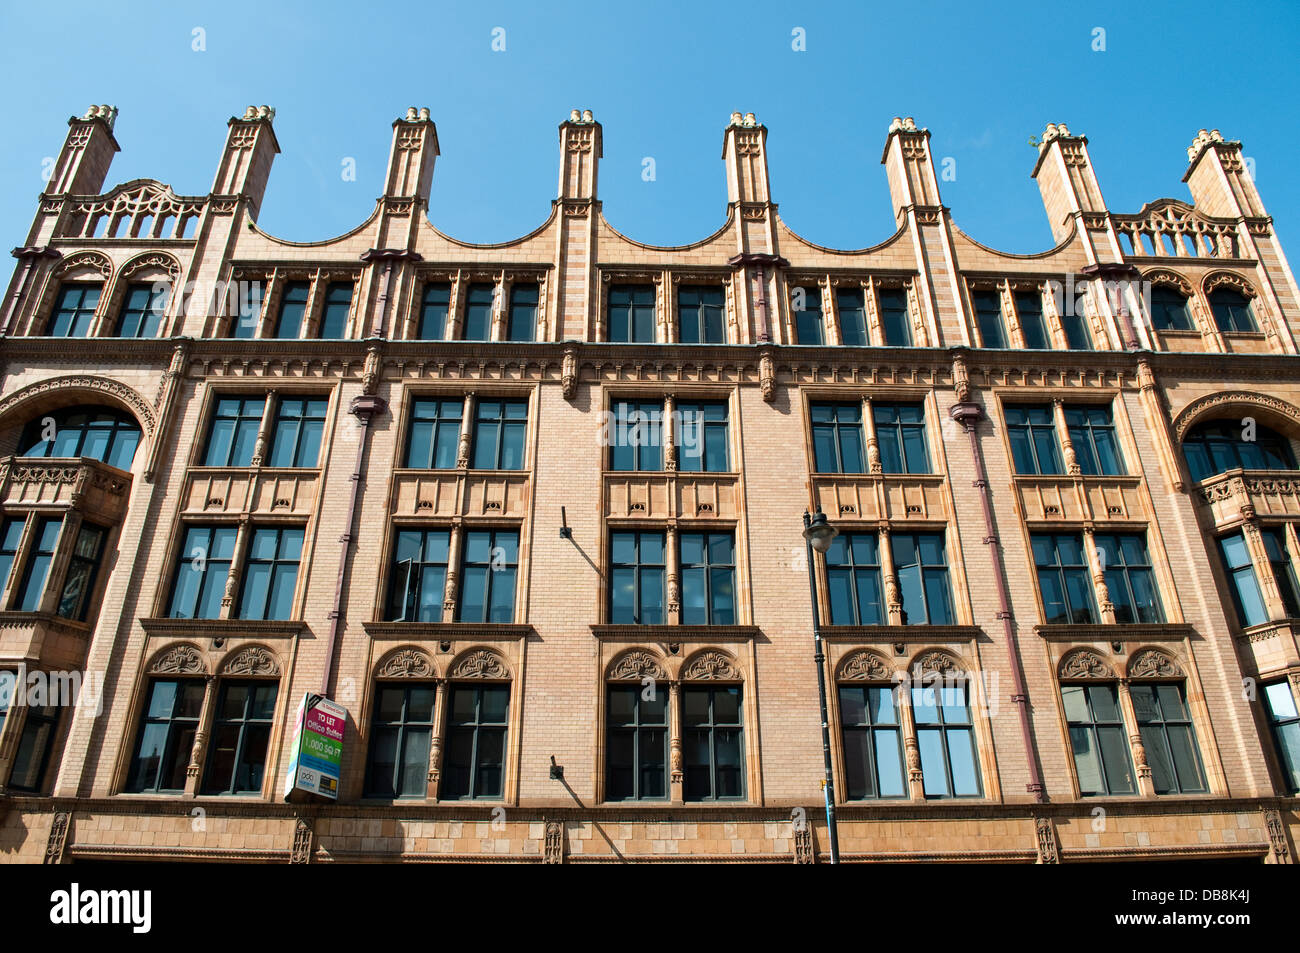 Historic brick building on Lower Mosley Street, Manchester, UK - Stock Image